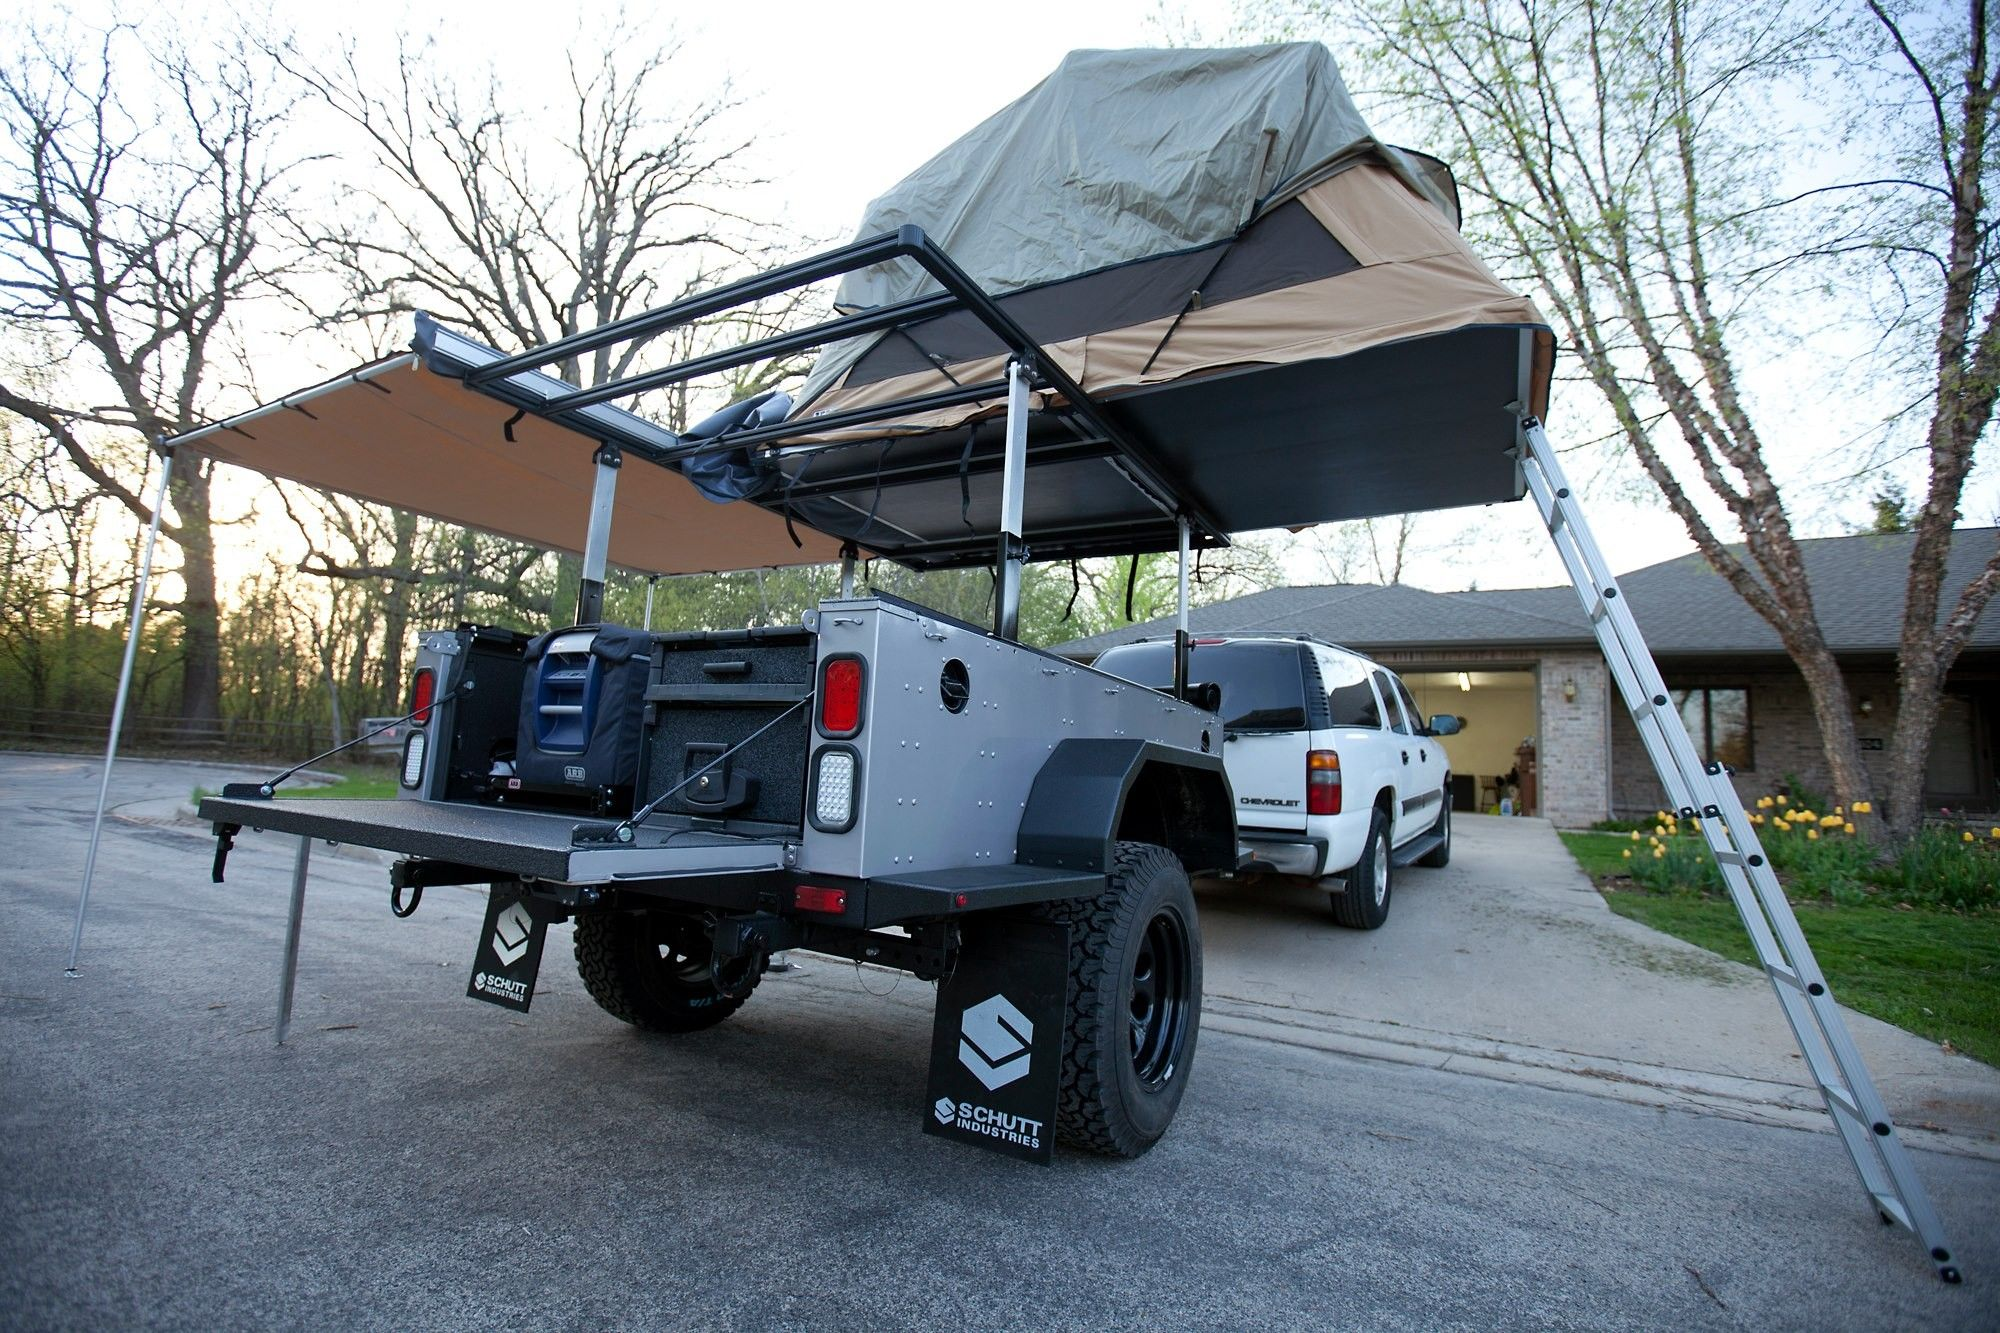 Bug Out Tent Camper Trailer - Year of Clean Water